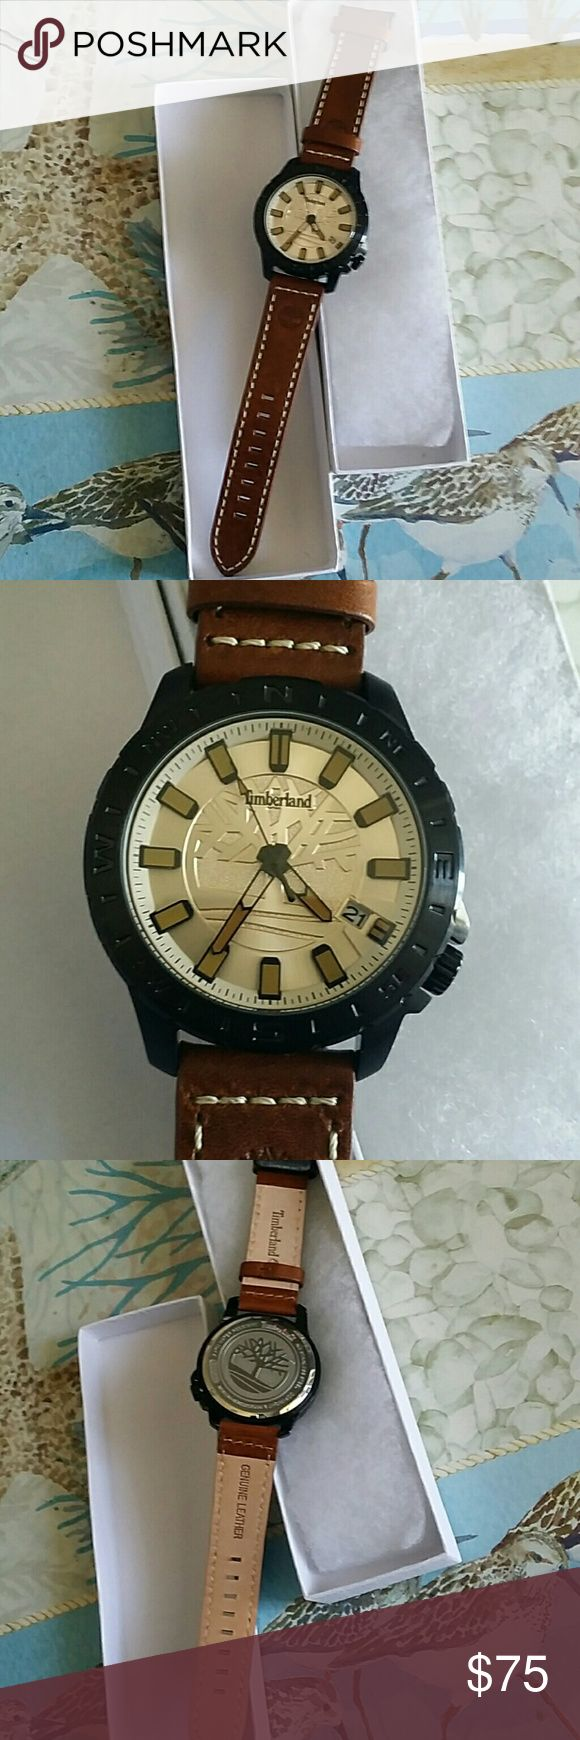 Men's Timberland Watch Men's Timberland Watch. Genuine  leather. New without tag. Timberland Accessories Watches